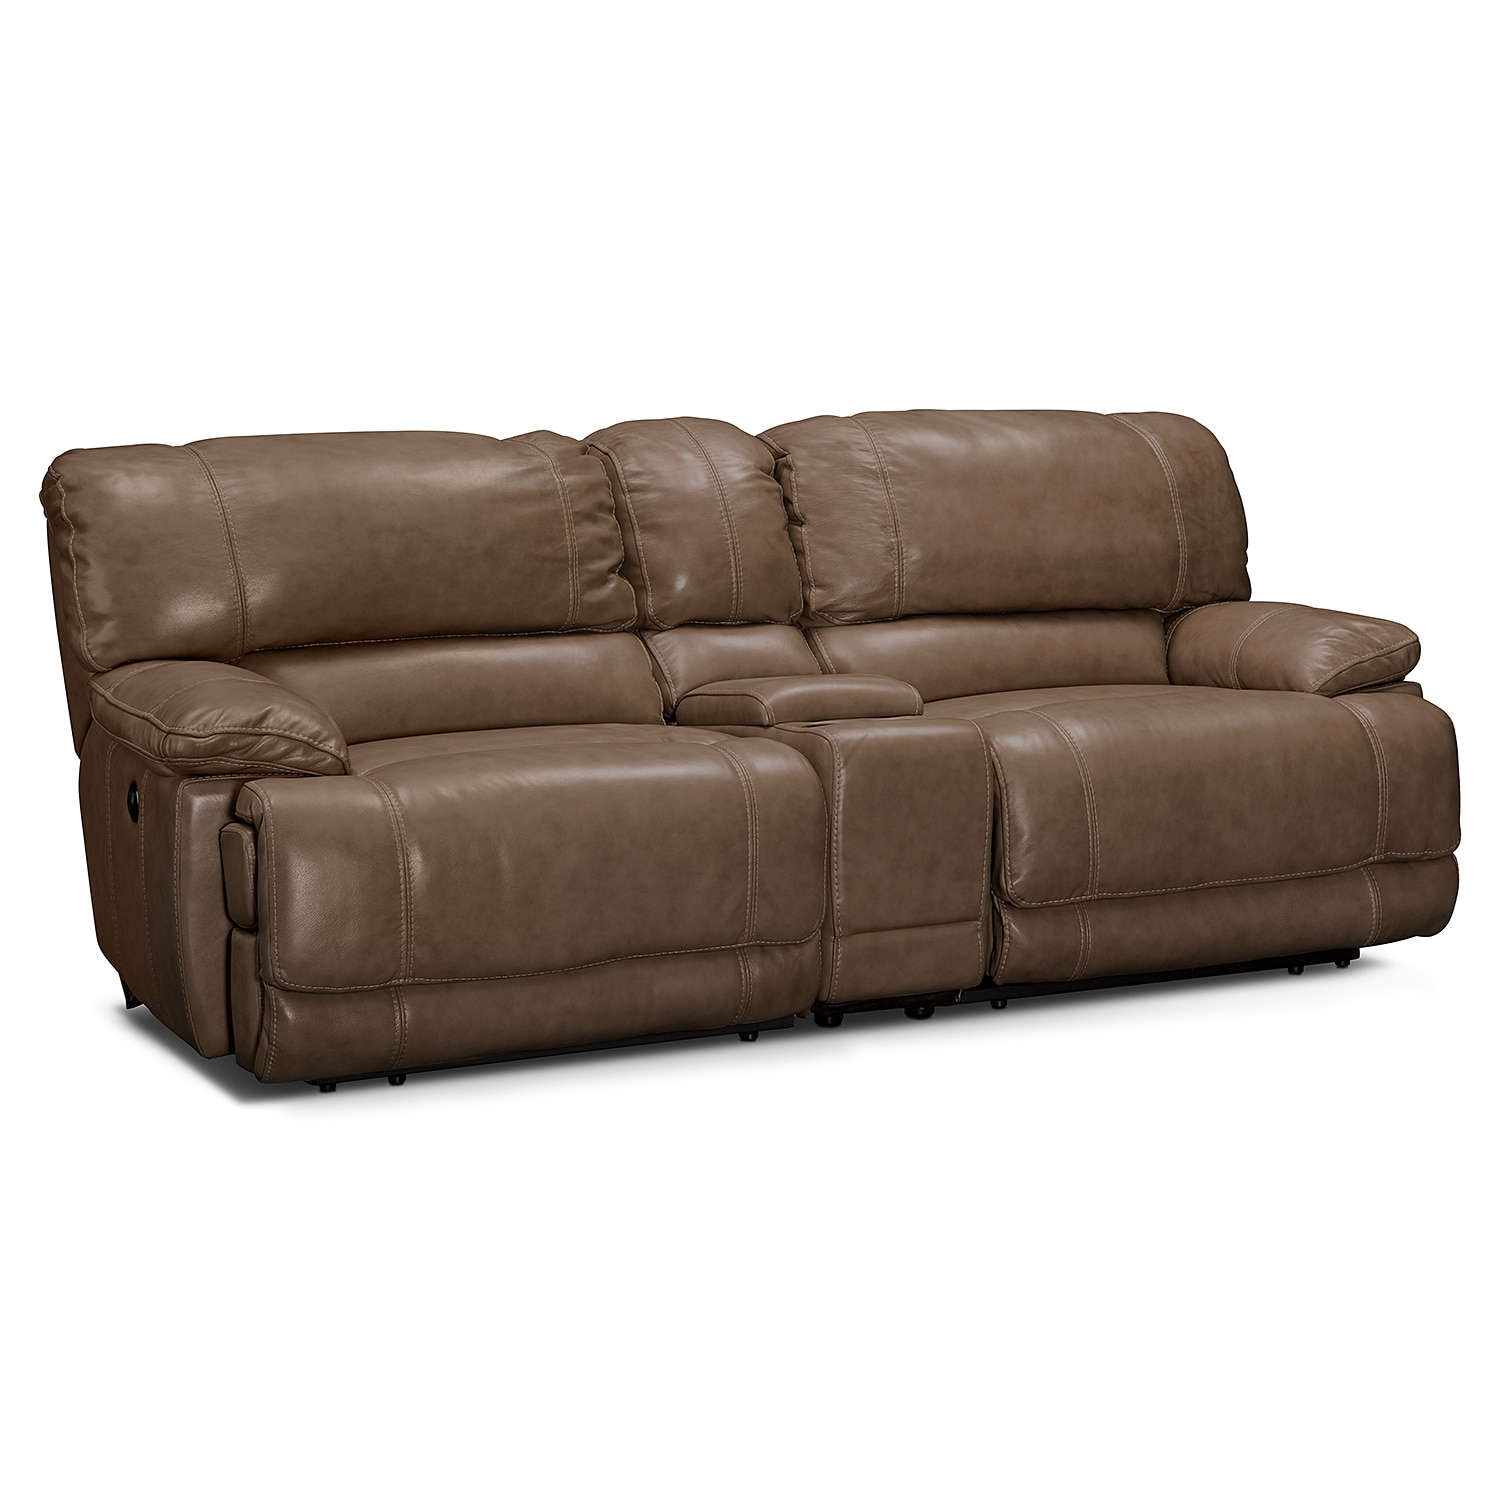 St Malo Ii 3 Pc Power Reclining Sofa With Console Value City Furniture